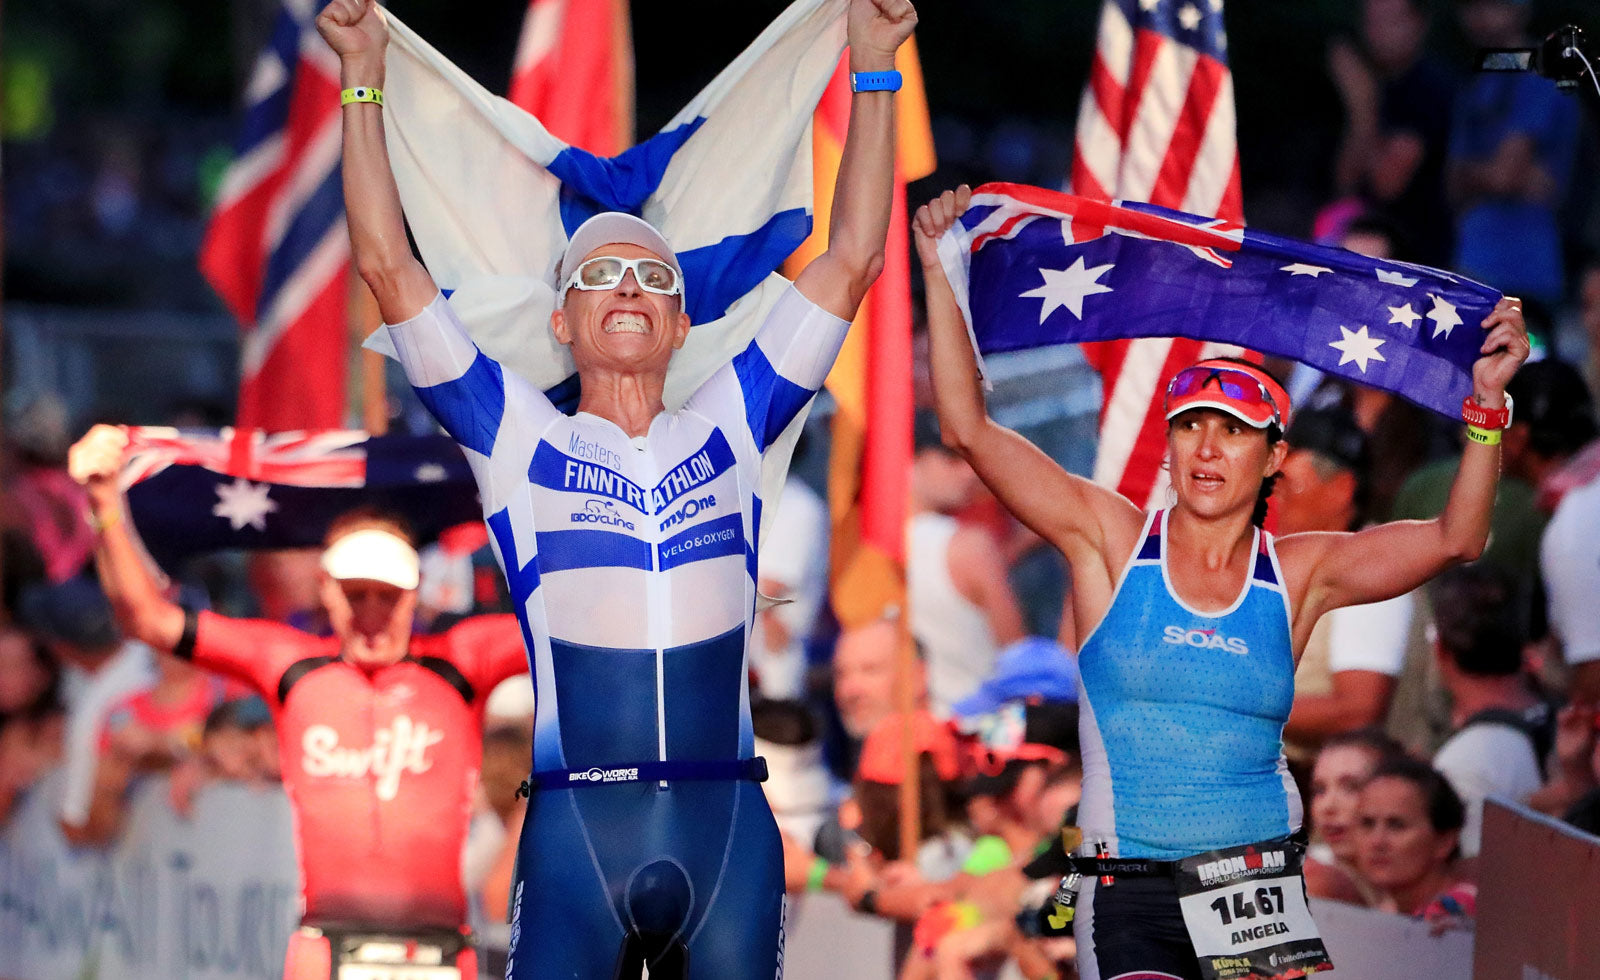 Kona Ironman World Championships Finishers Age Group